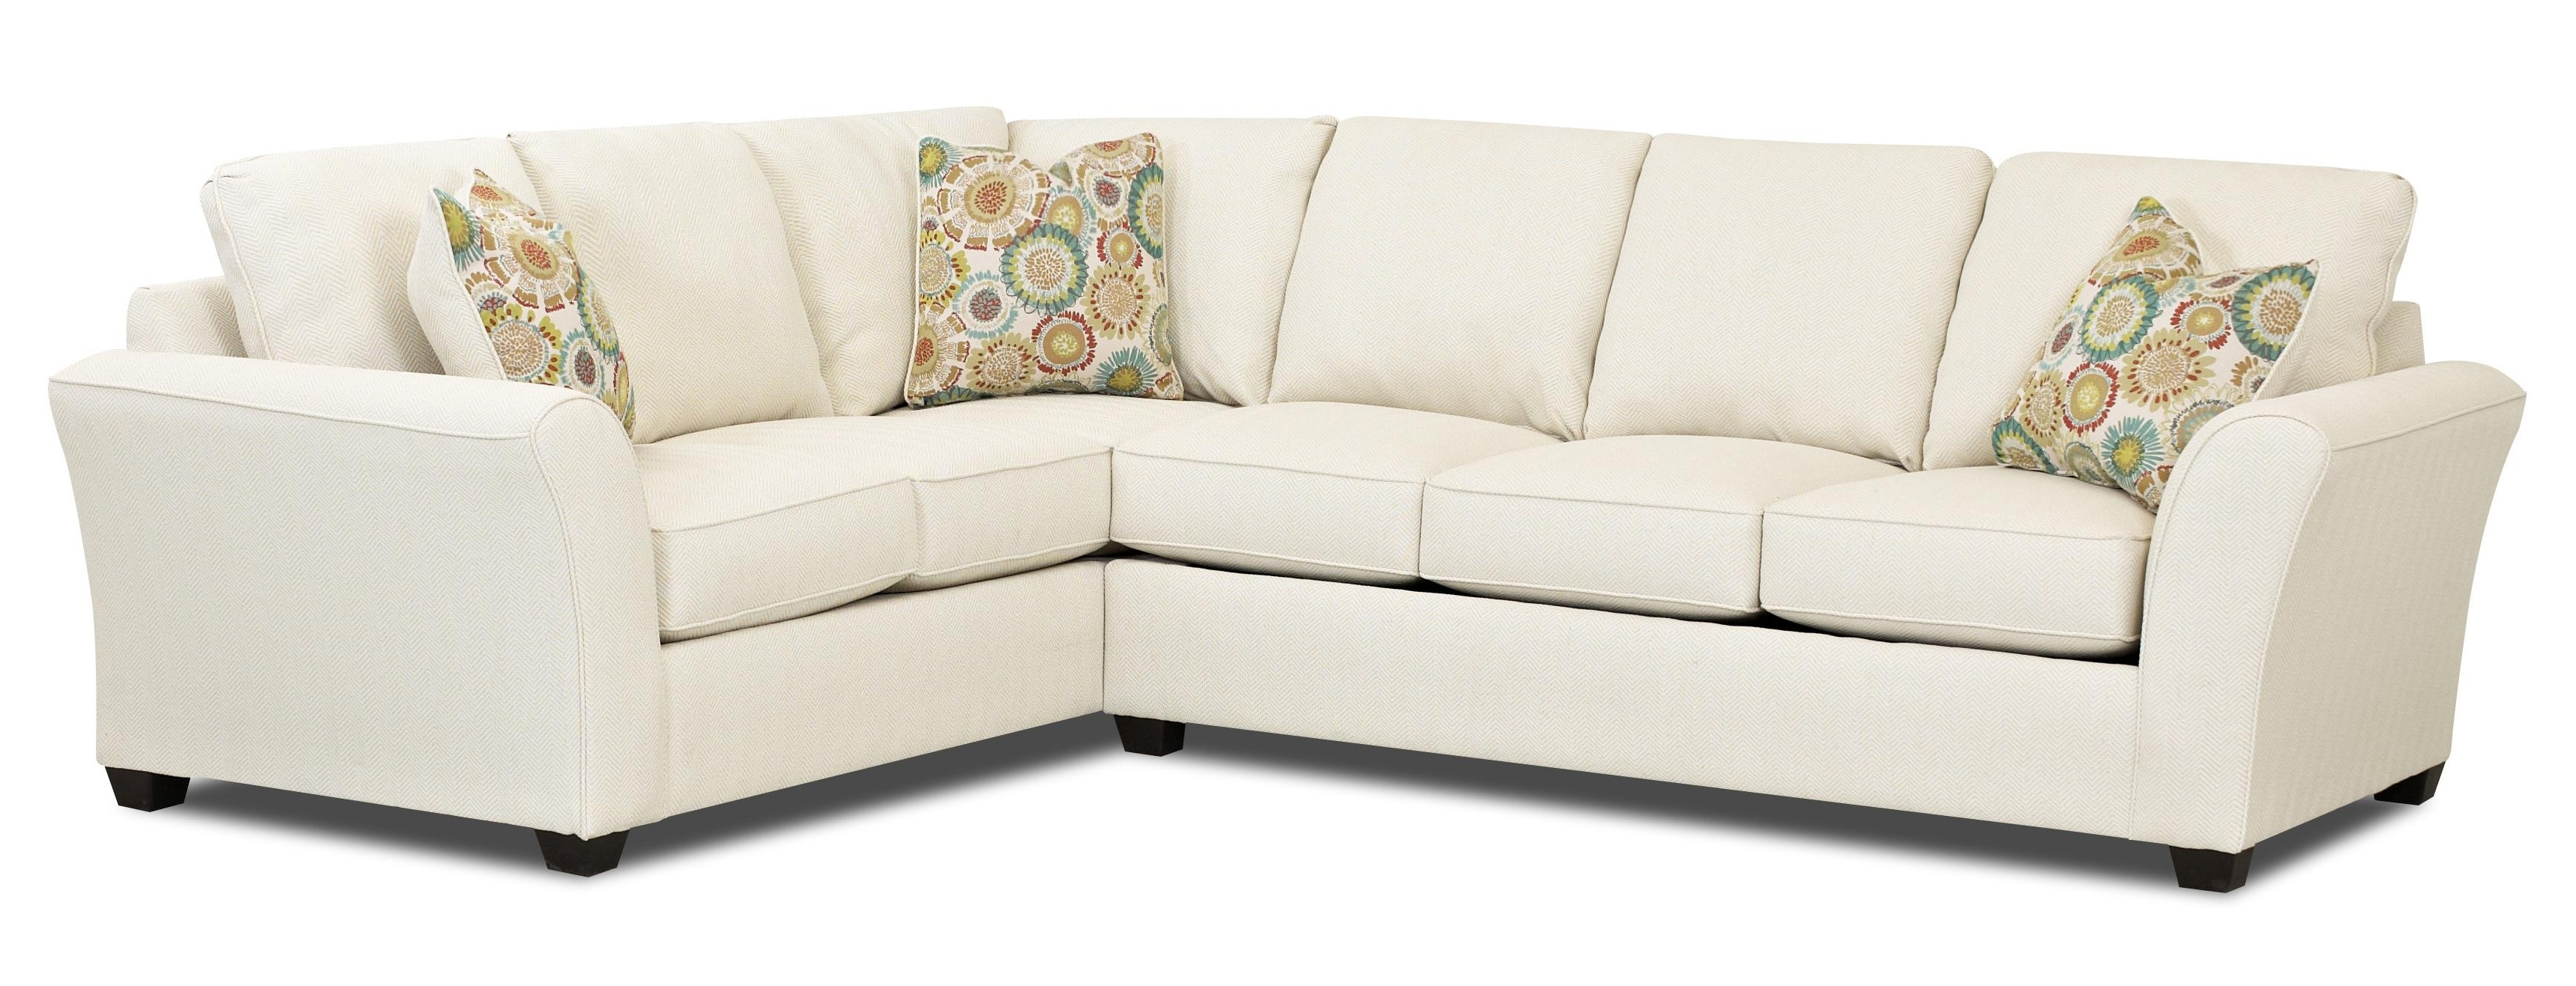 Furniture : 4 Seater Sofa Bed 2 Seater Vinyl Sofa 5 Seater Sofa Throughout Preferred Sectional Sofas In Hyderabad (View 4 of 15)